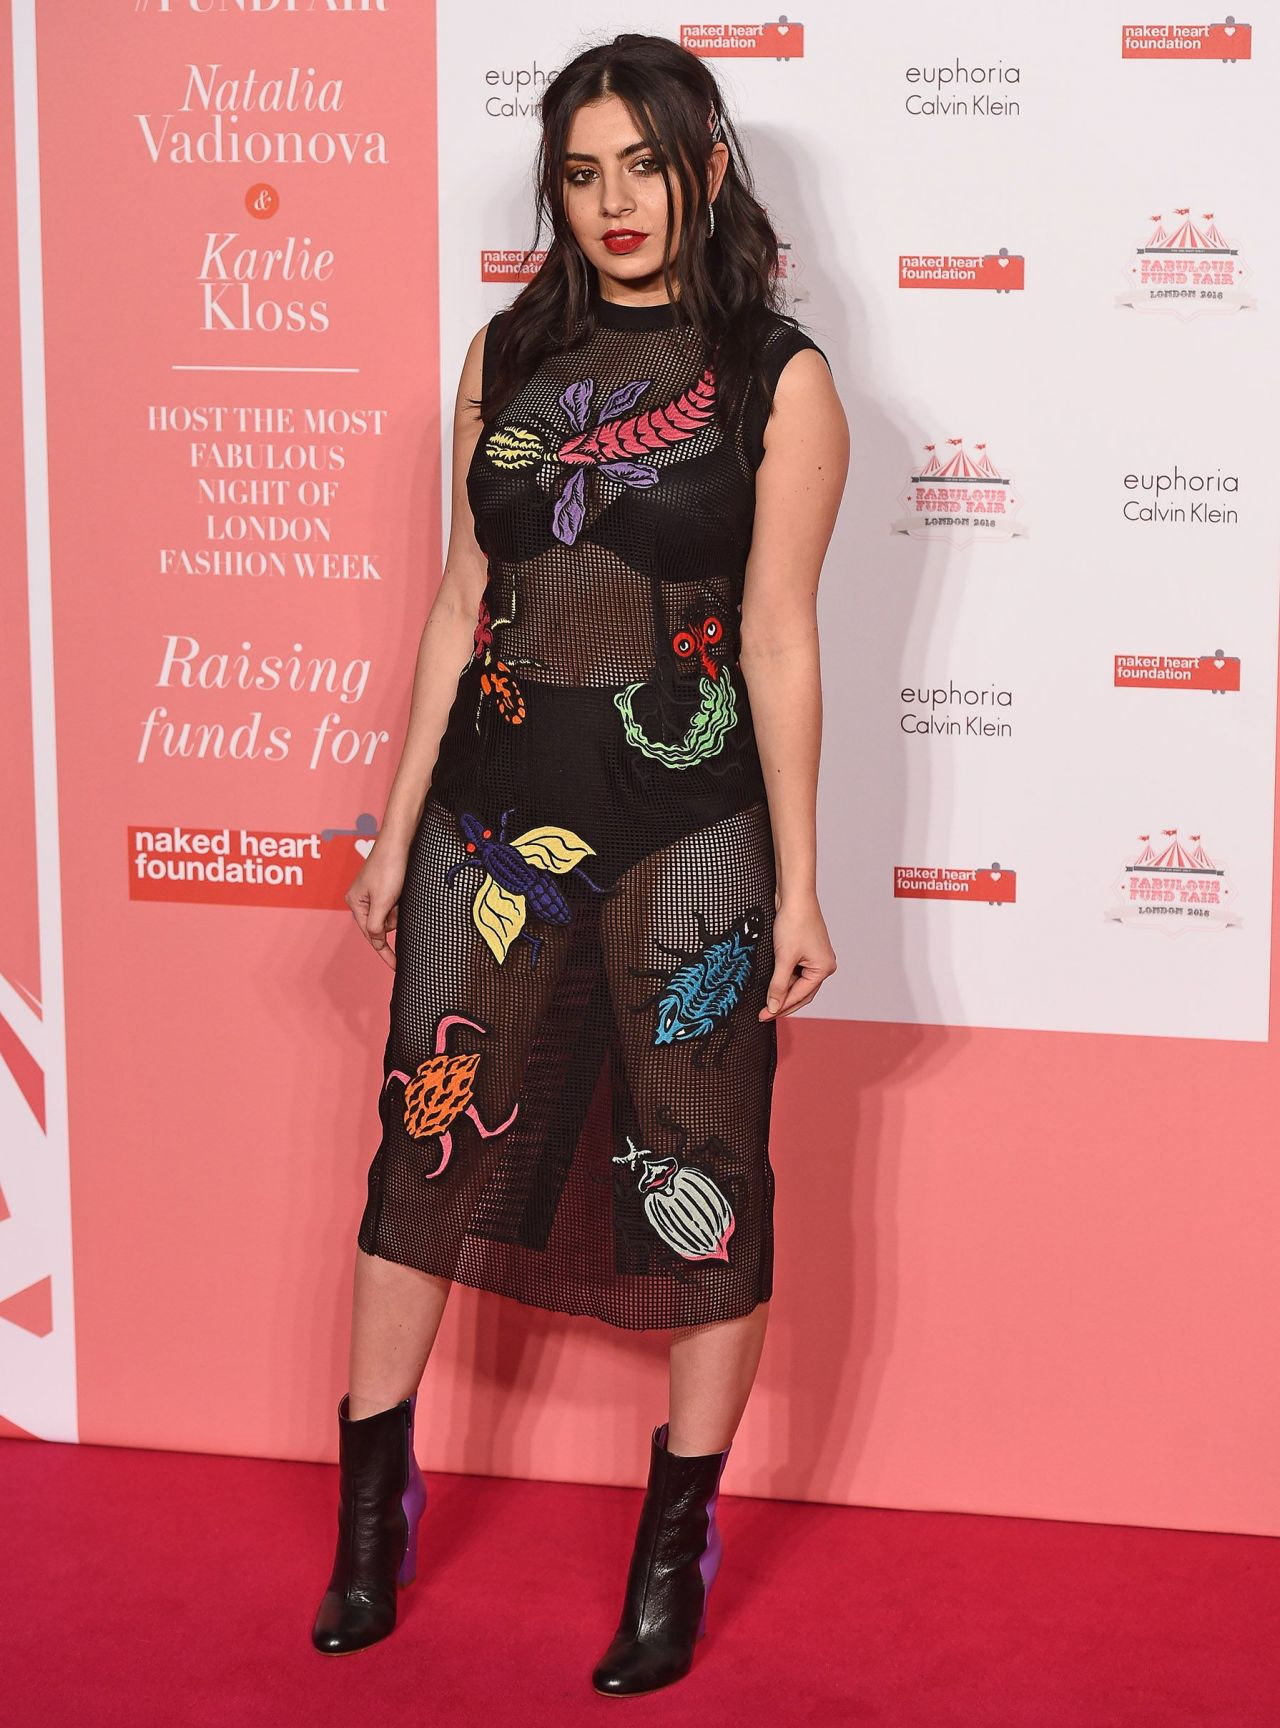 charli-xcx-on-red-carpet-the-naked-heart-foundation-s-fabulous-fund-fair-in-london-2-20-16-1